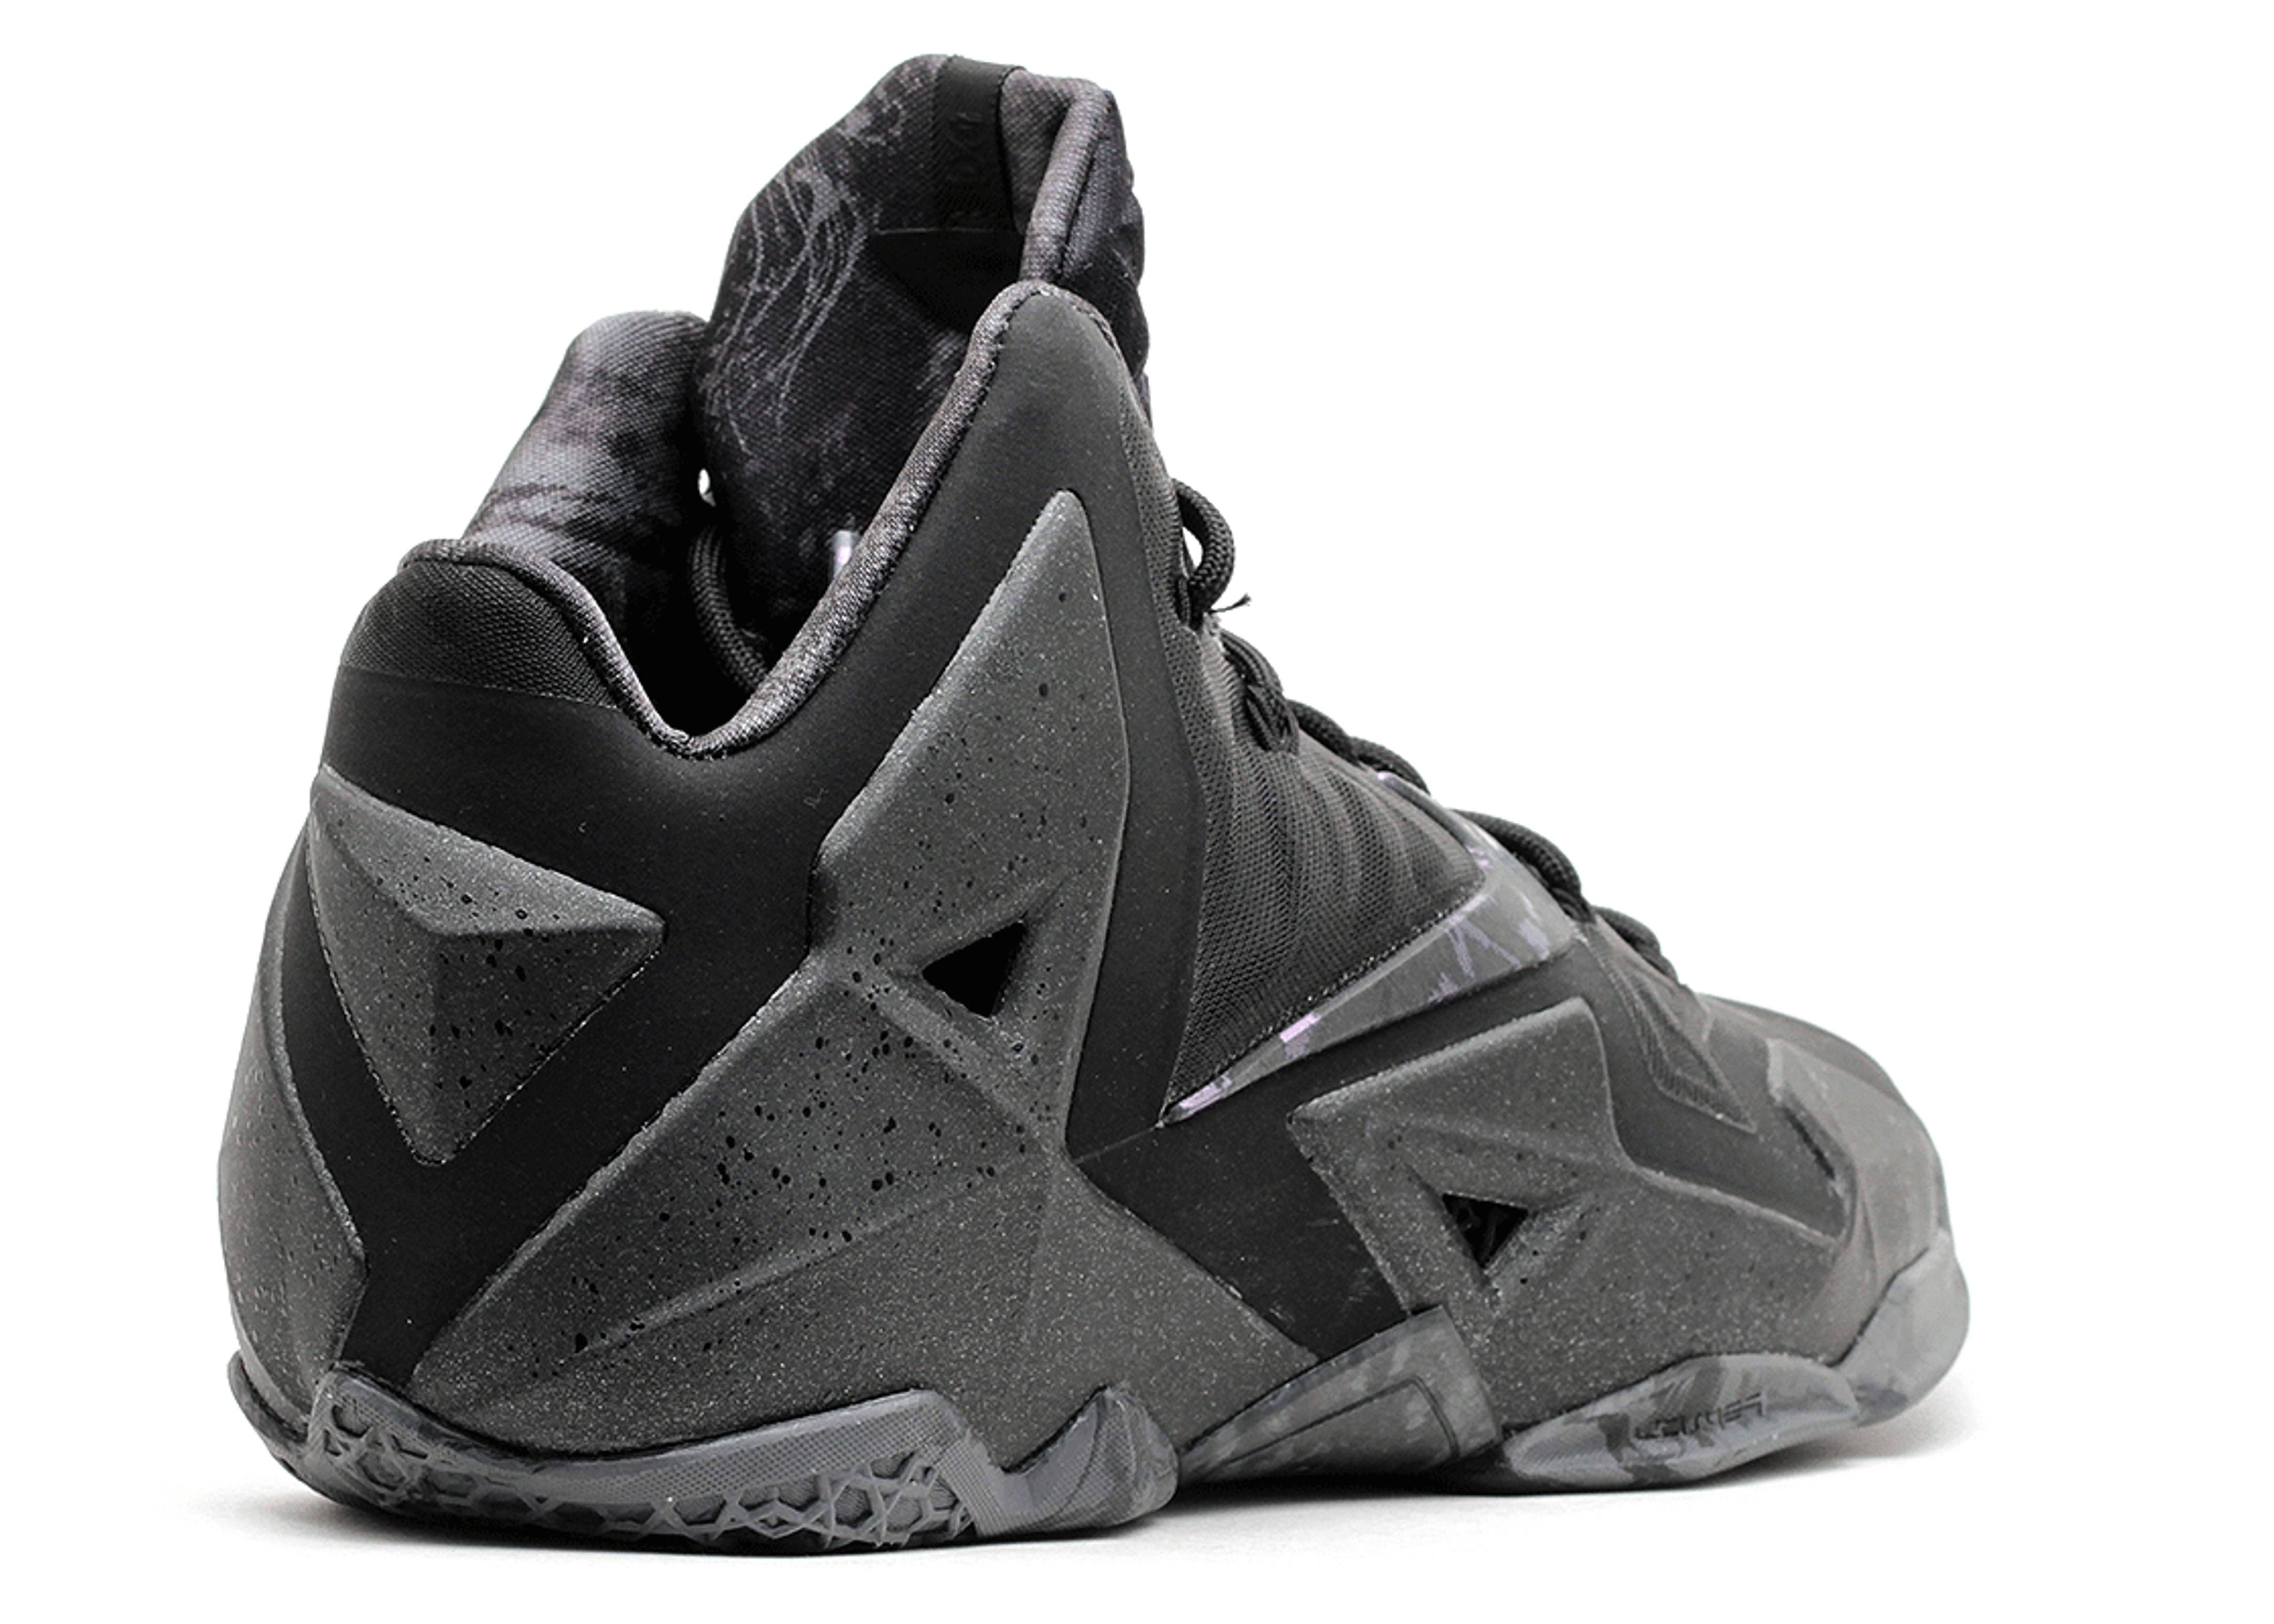 finest selection a0be7 7d2a0 ... spain lebron 11 blackout nike 616175 090 black multi color anthracite  flight club 6f859 cf4bc